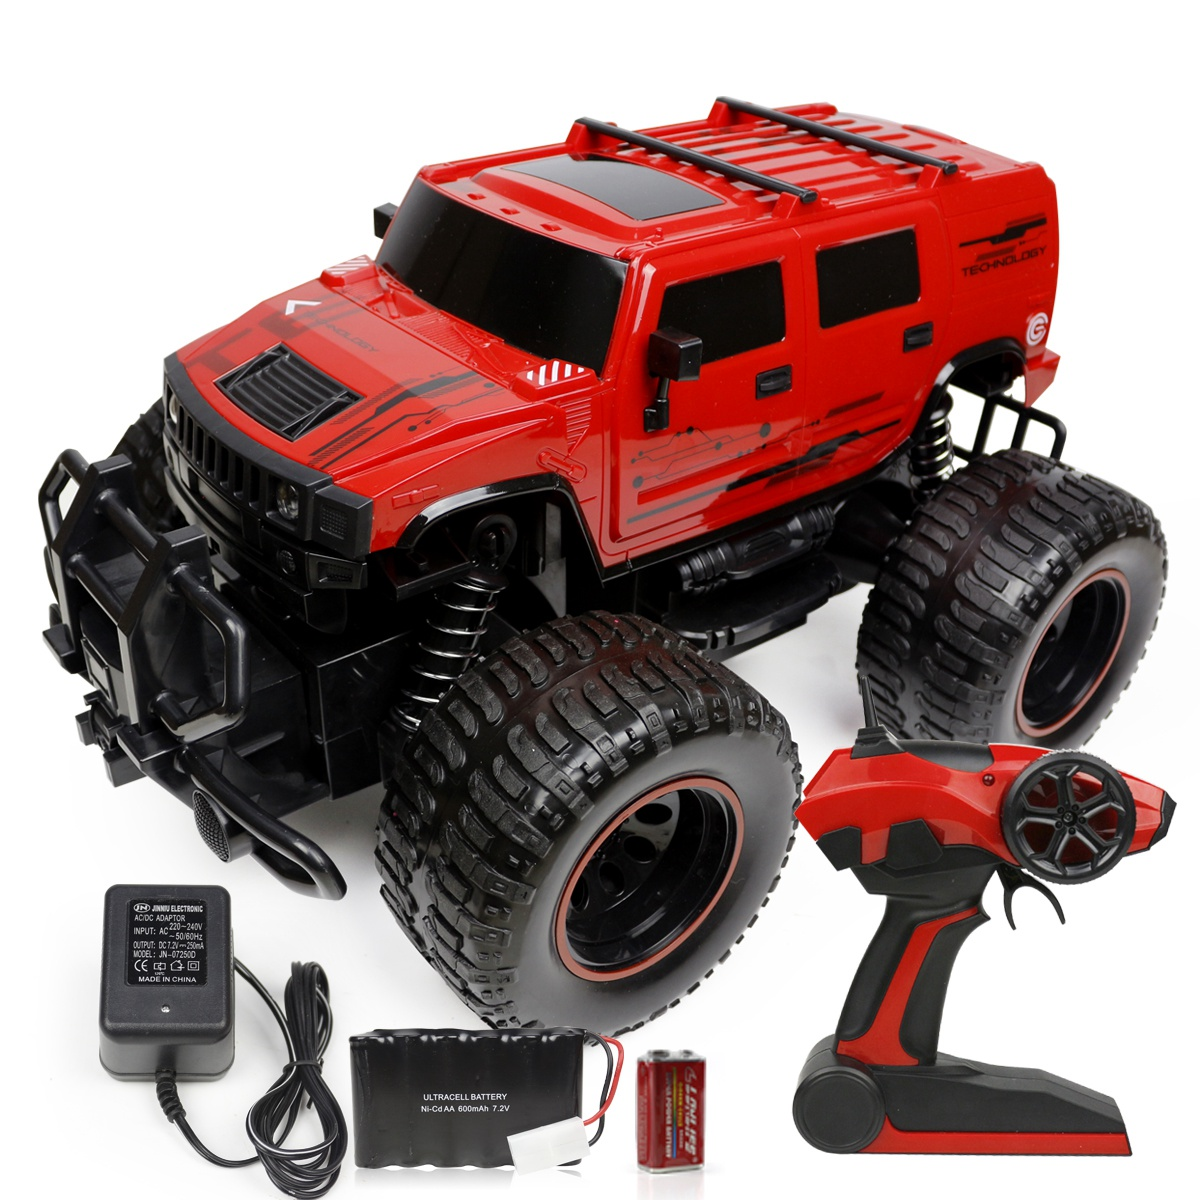 Usd 15385 Children 2 4g Remote Control Car 18 Big Foot Toy Lightbox Moreview